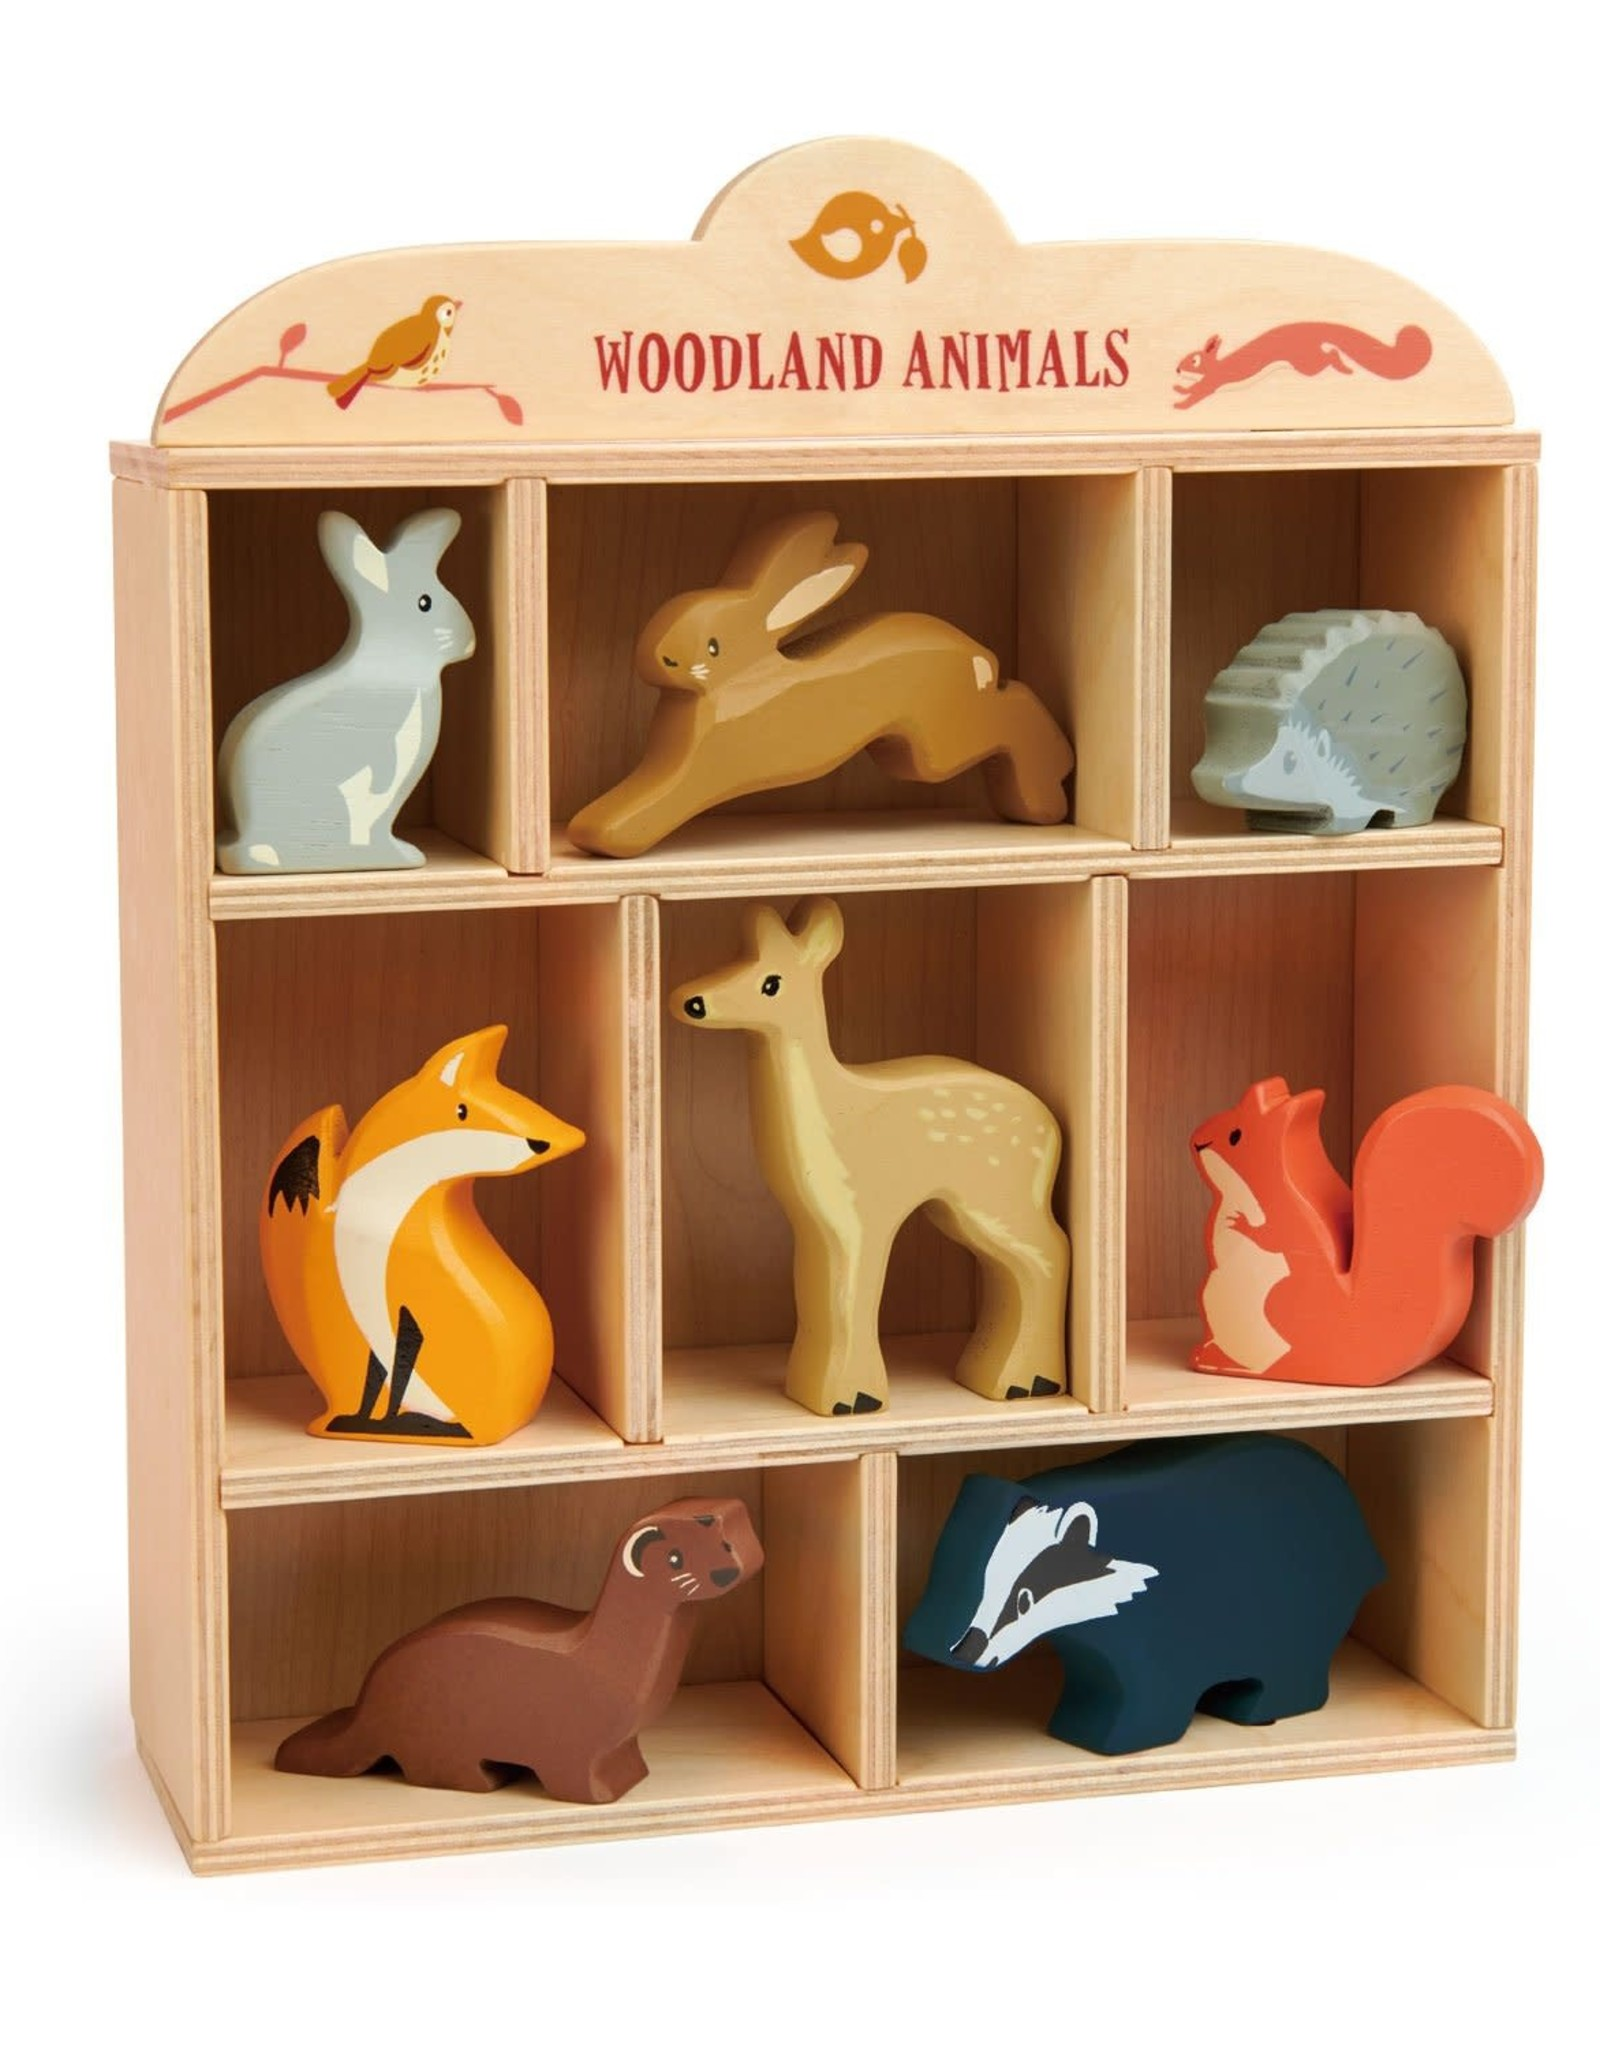 Tender Leaf Toys Wooden Animal Collection - Woodland Animals